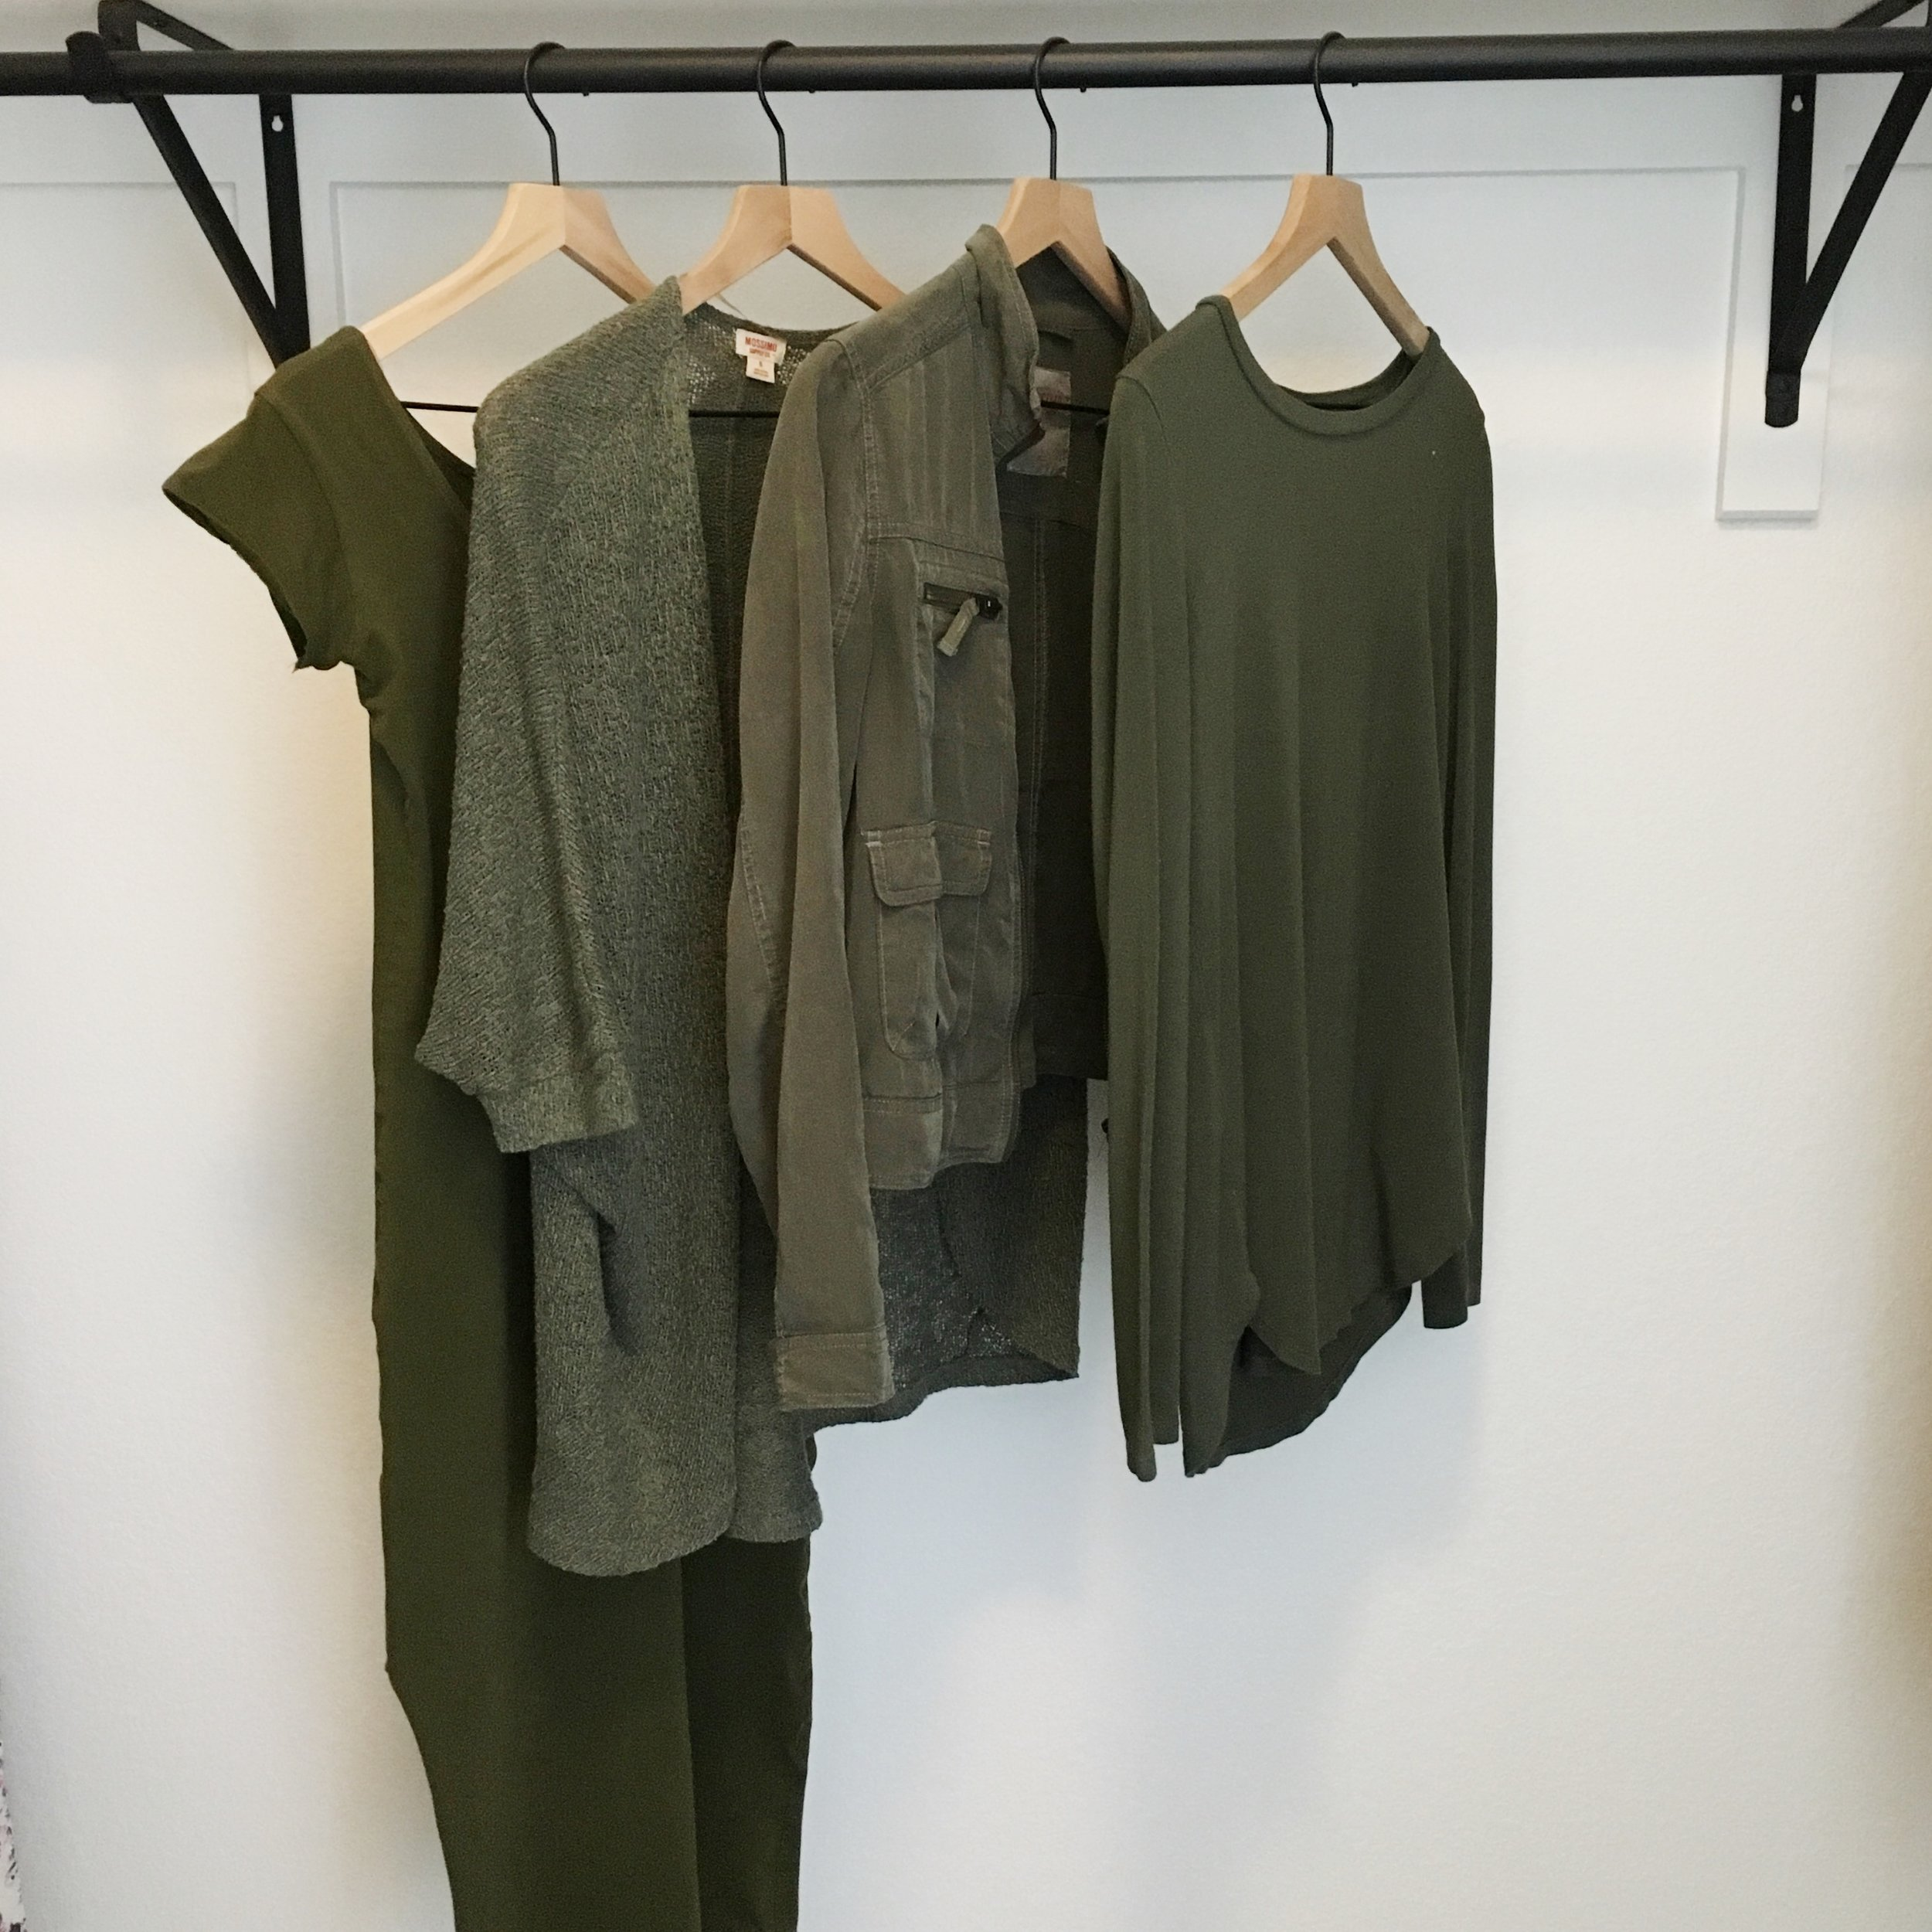 Ethical fashion in capsule wardrobe; coordinating colors